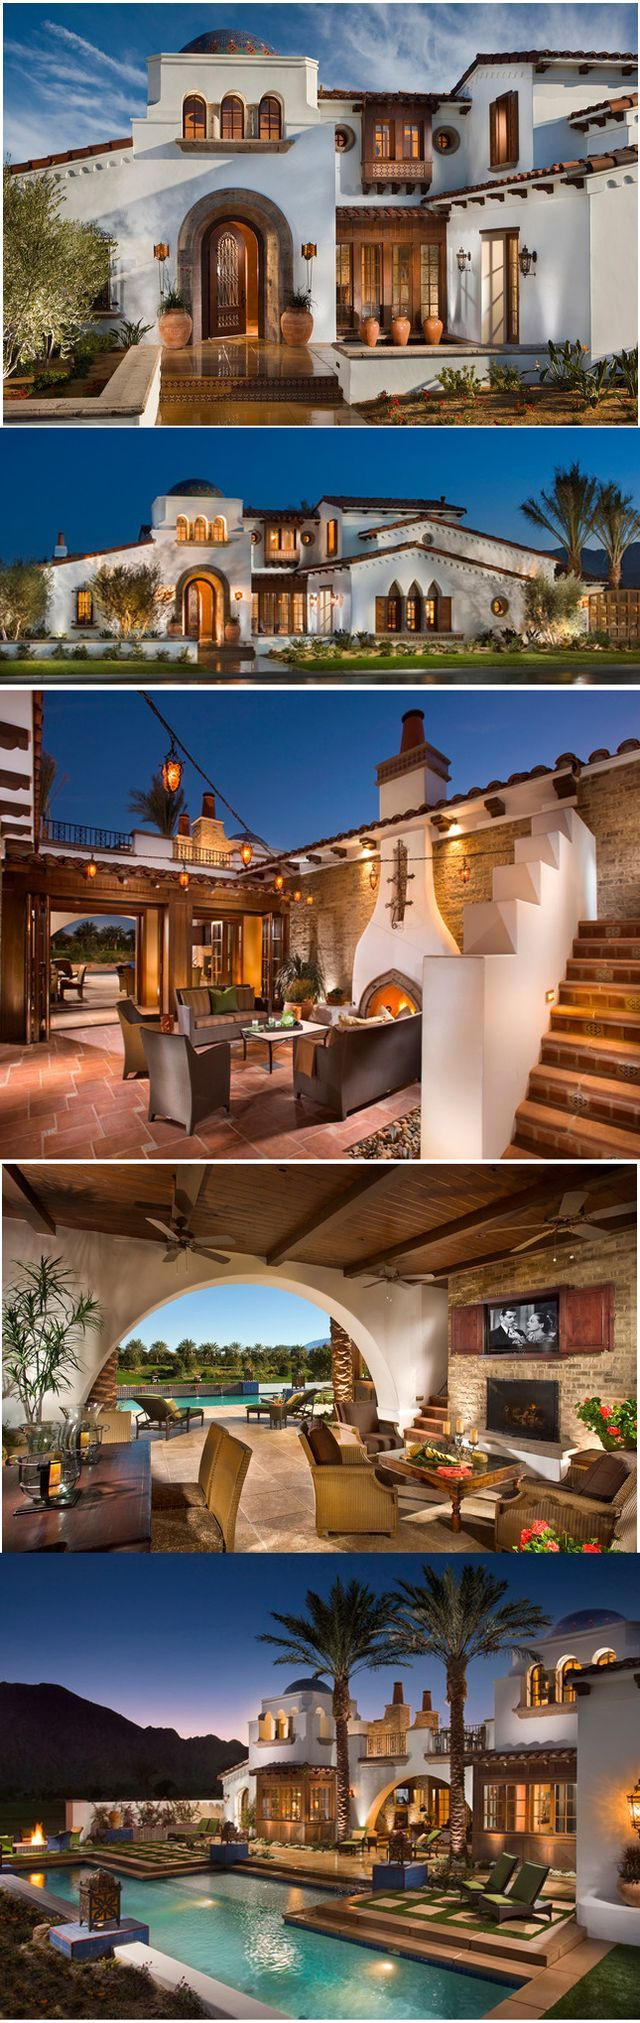 Amazeballs getaway and home!!! Genius open spaced design and lush Spanish/Mediterranean style interior design.